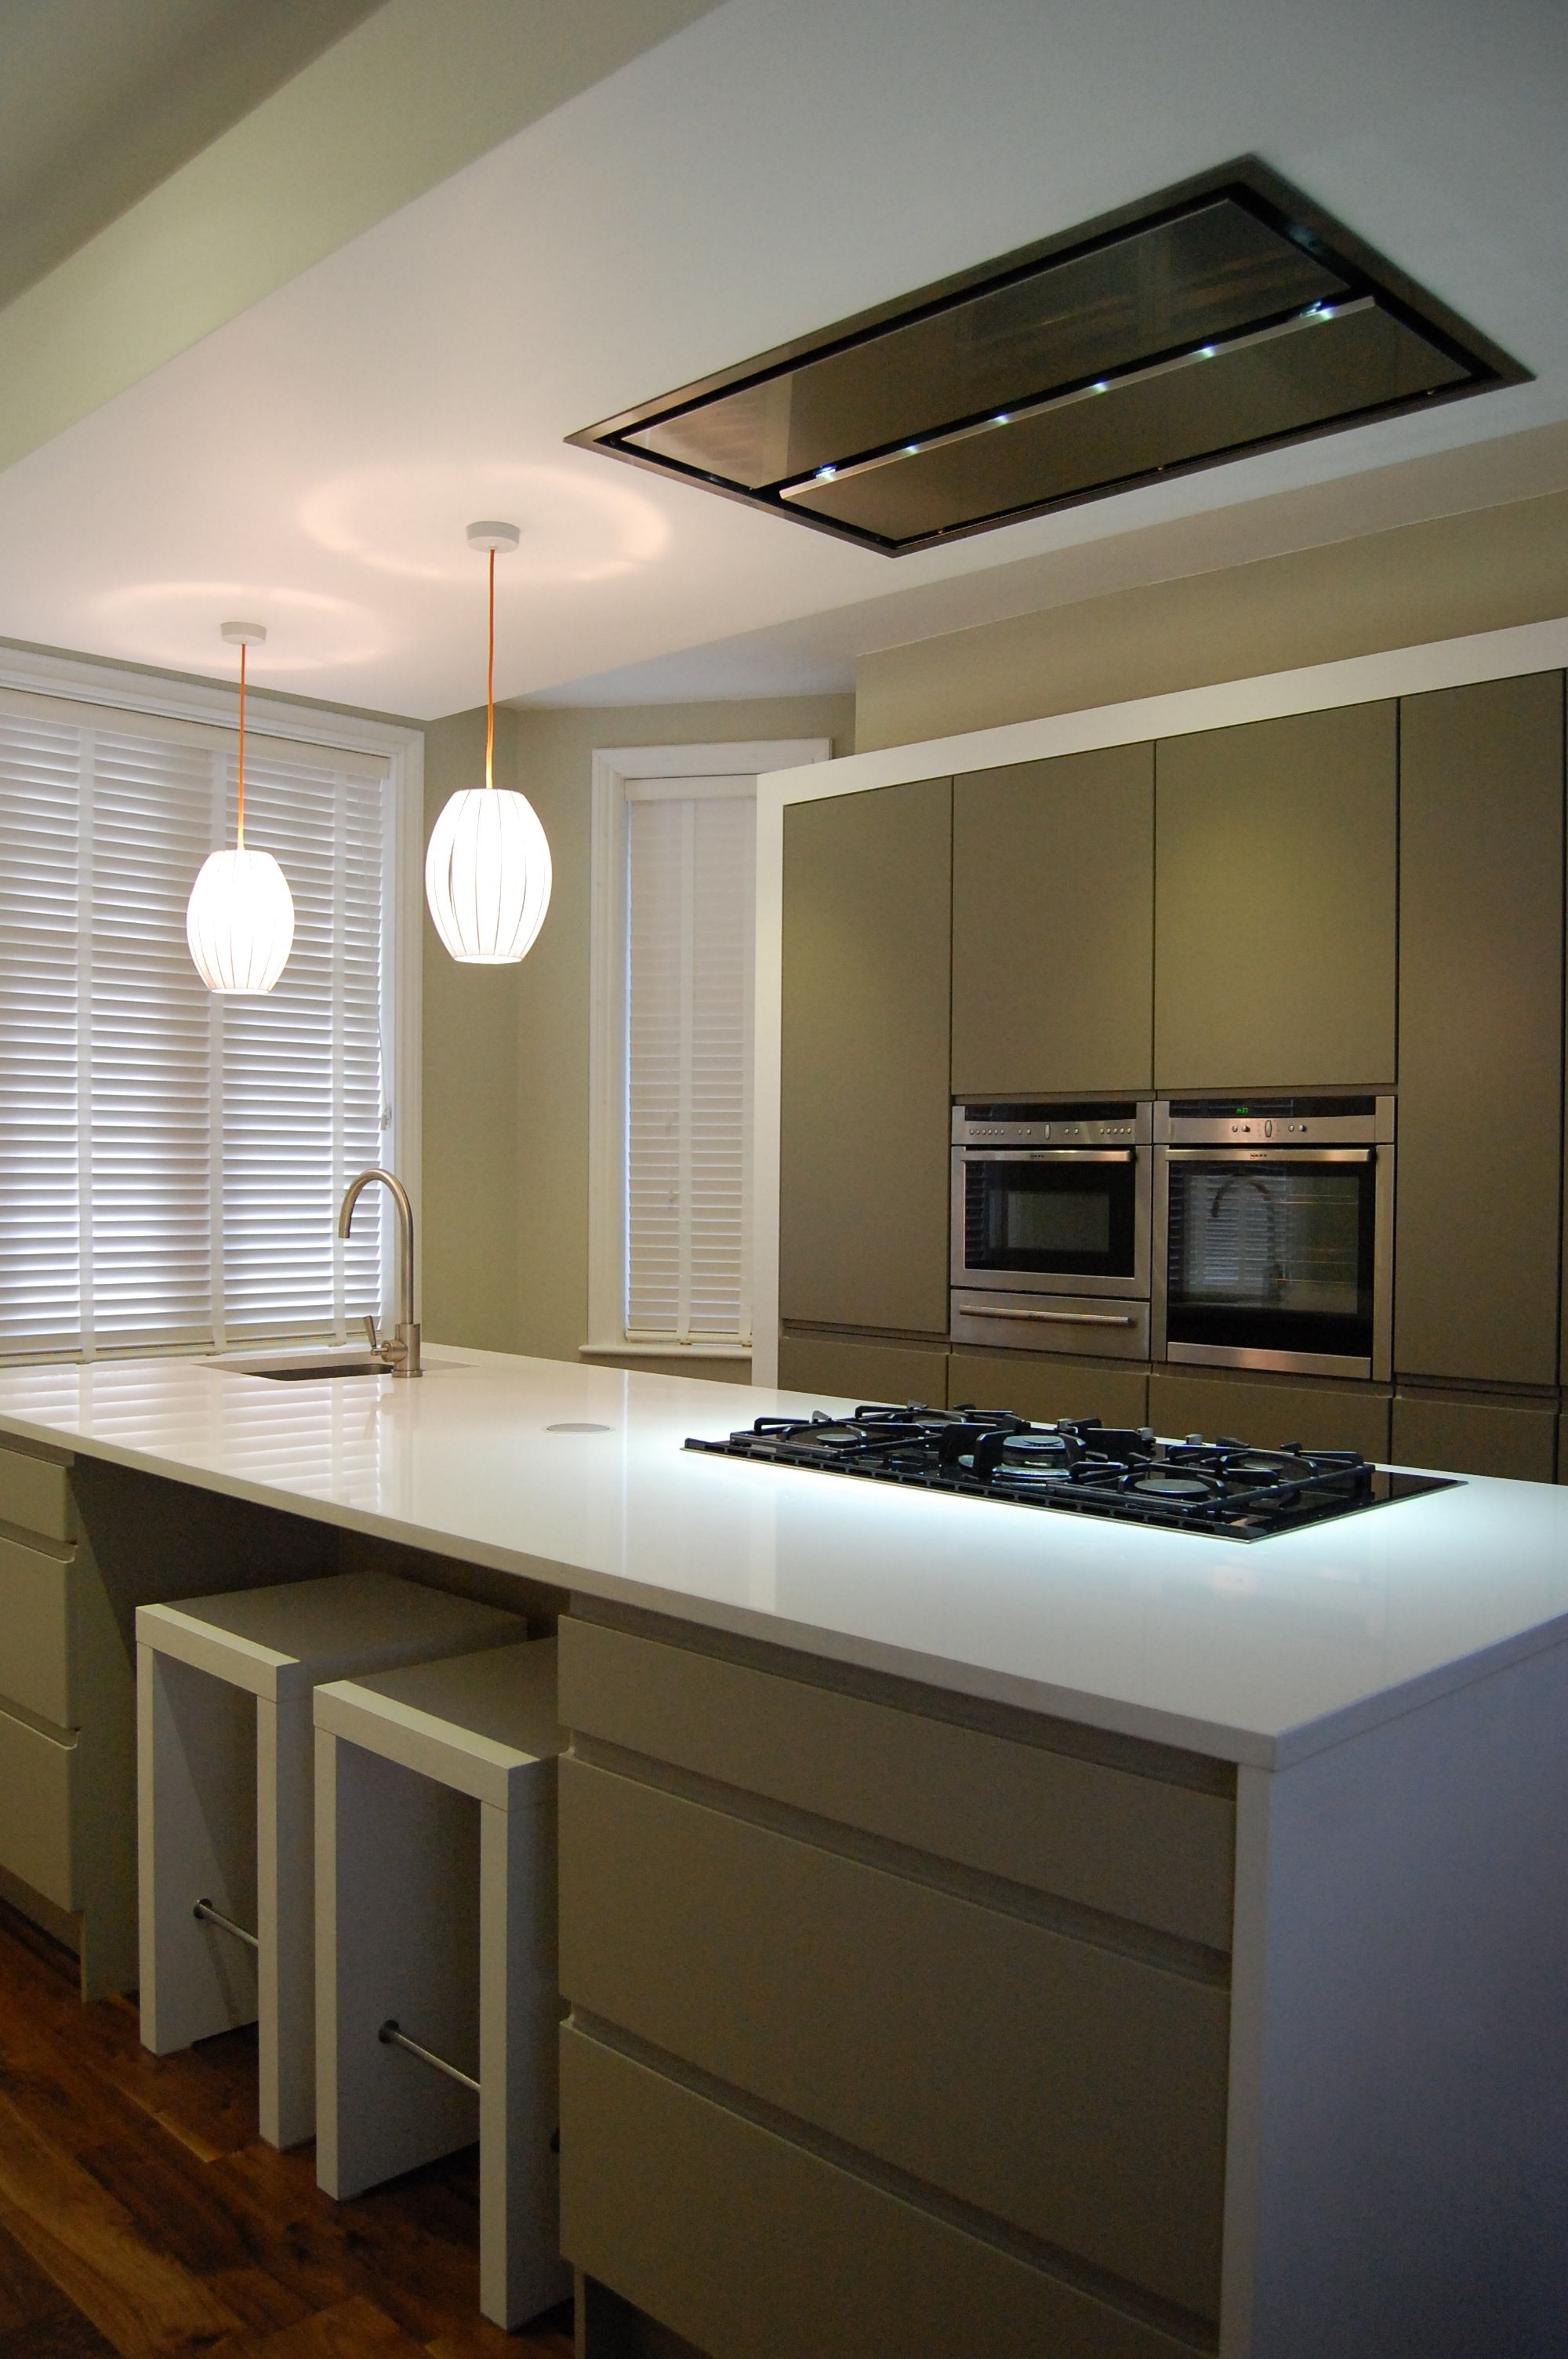 Weetwood Leeds. We love this Sharp, contemporary style kitchen in an ...